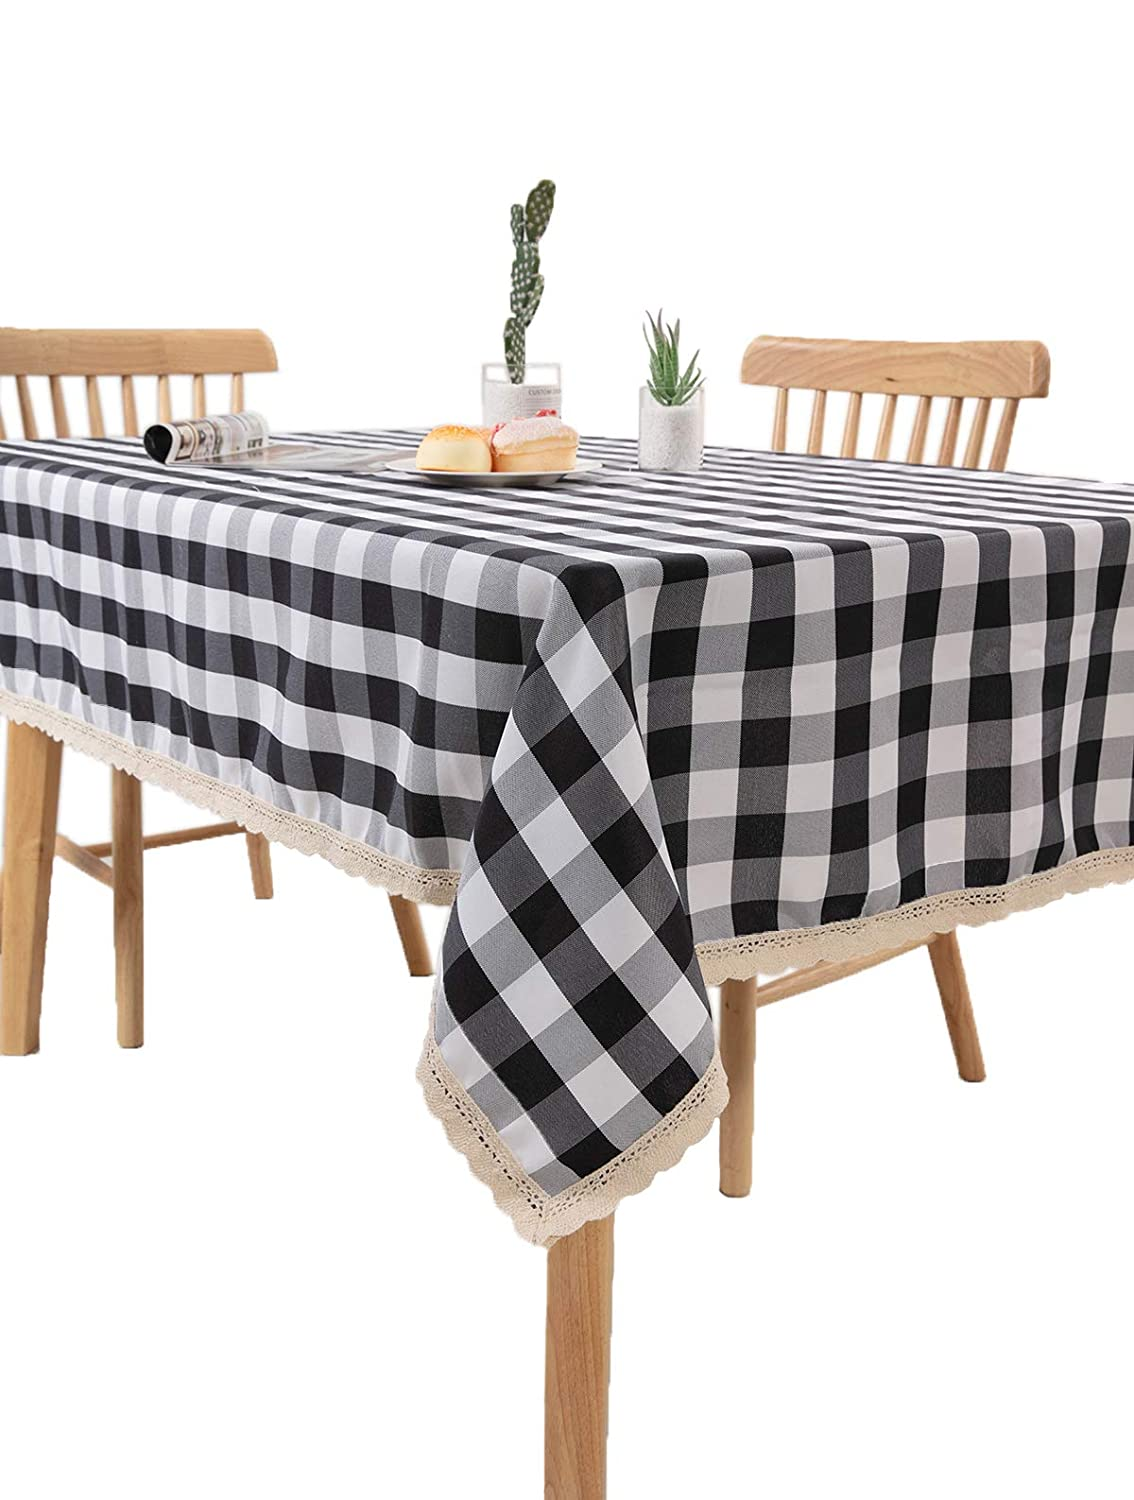 Nobildonna 55 x 72-Inch Gingham Checkered Tablecloth, Black & White Checker, Rectangular Lace Polyester Tablecloth